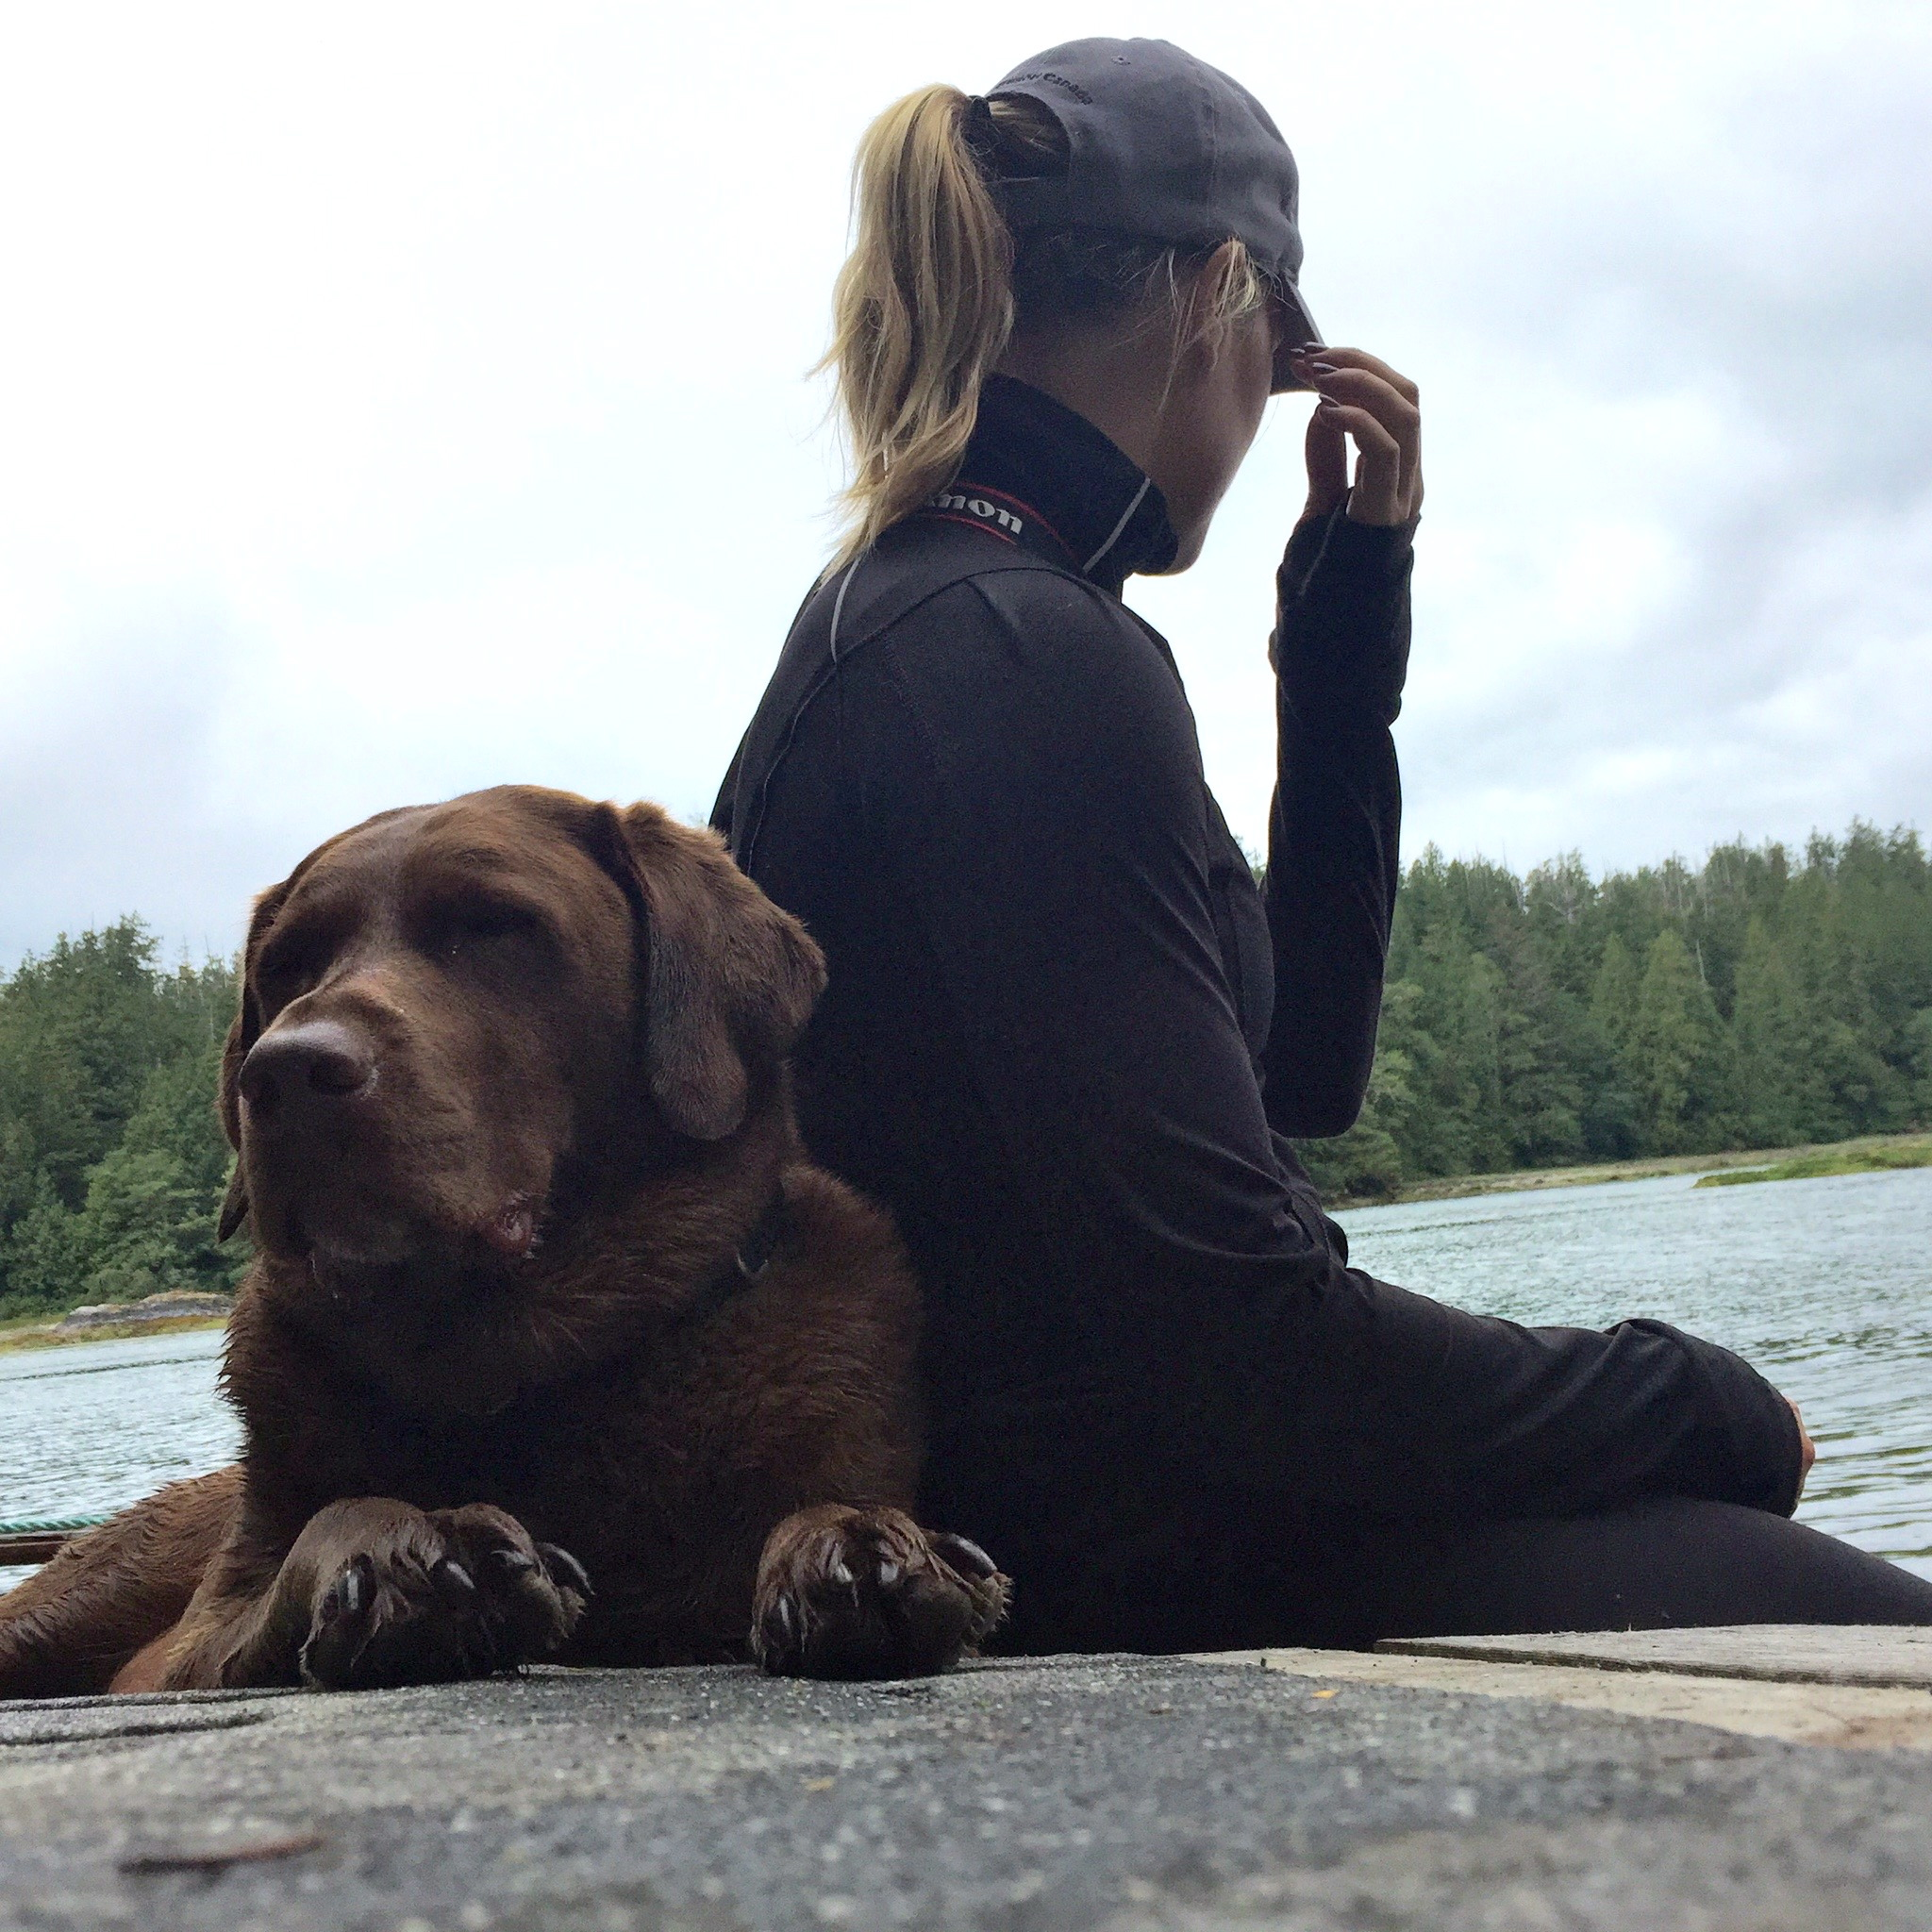 Waiting for the water taxi after our hike on the Big Tree Trail, Meares Island, Tofino, BC, Canada.